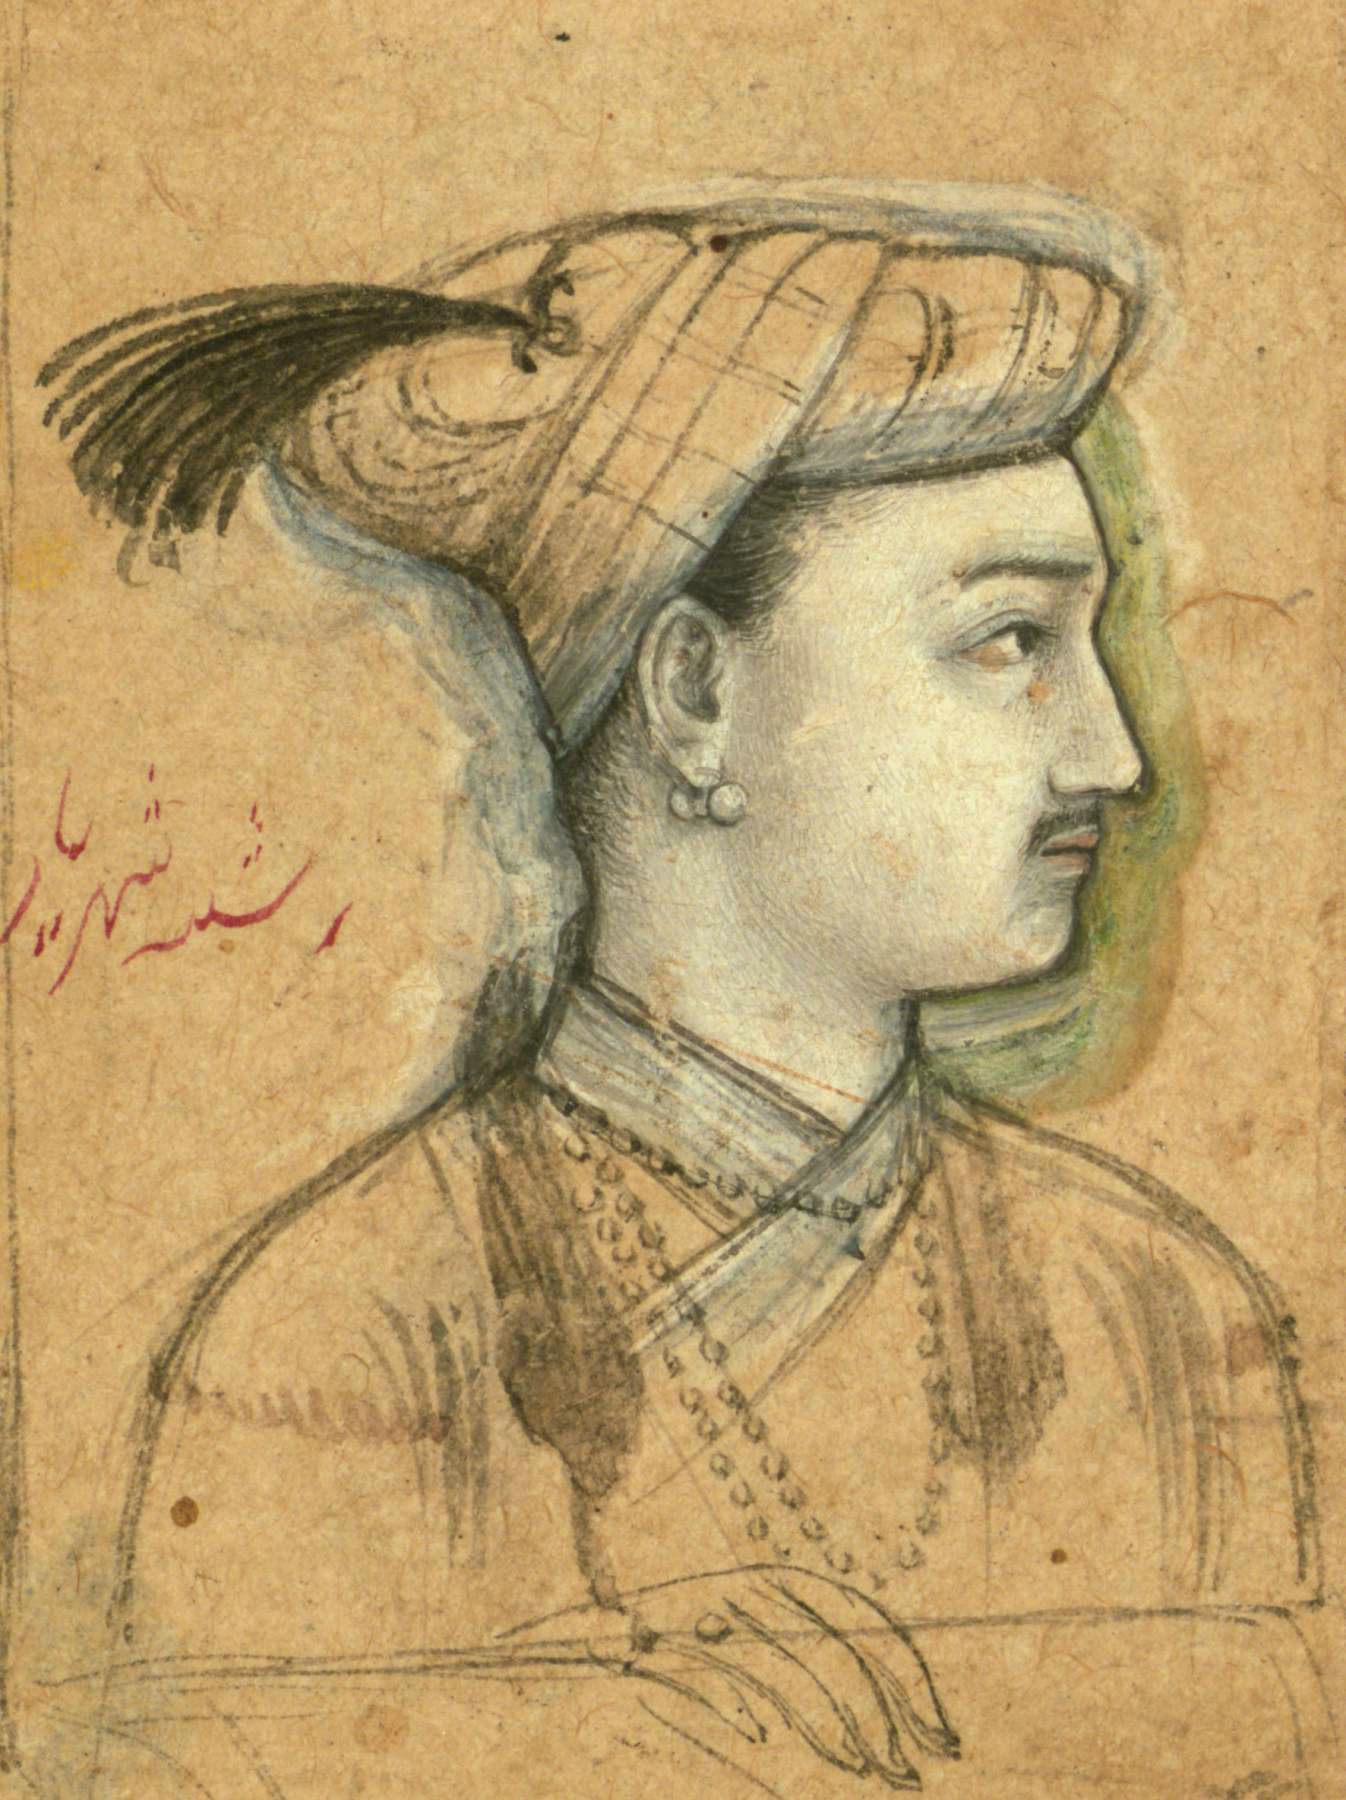 Shahriyar *ink and pigments on paper  *5.3 x 4.2 cm